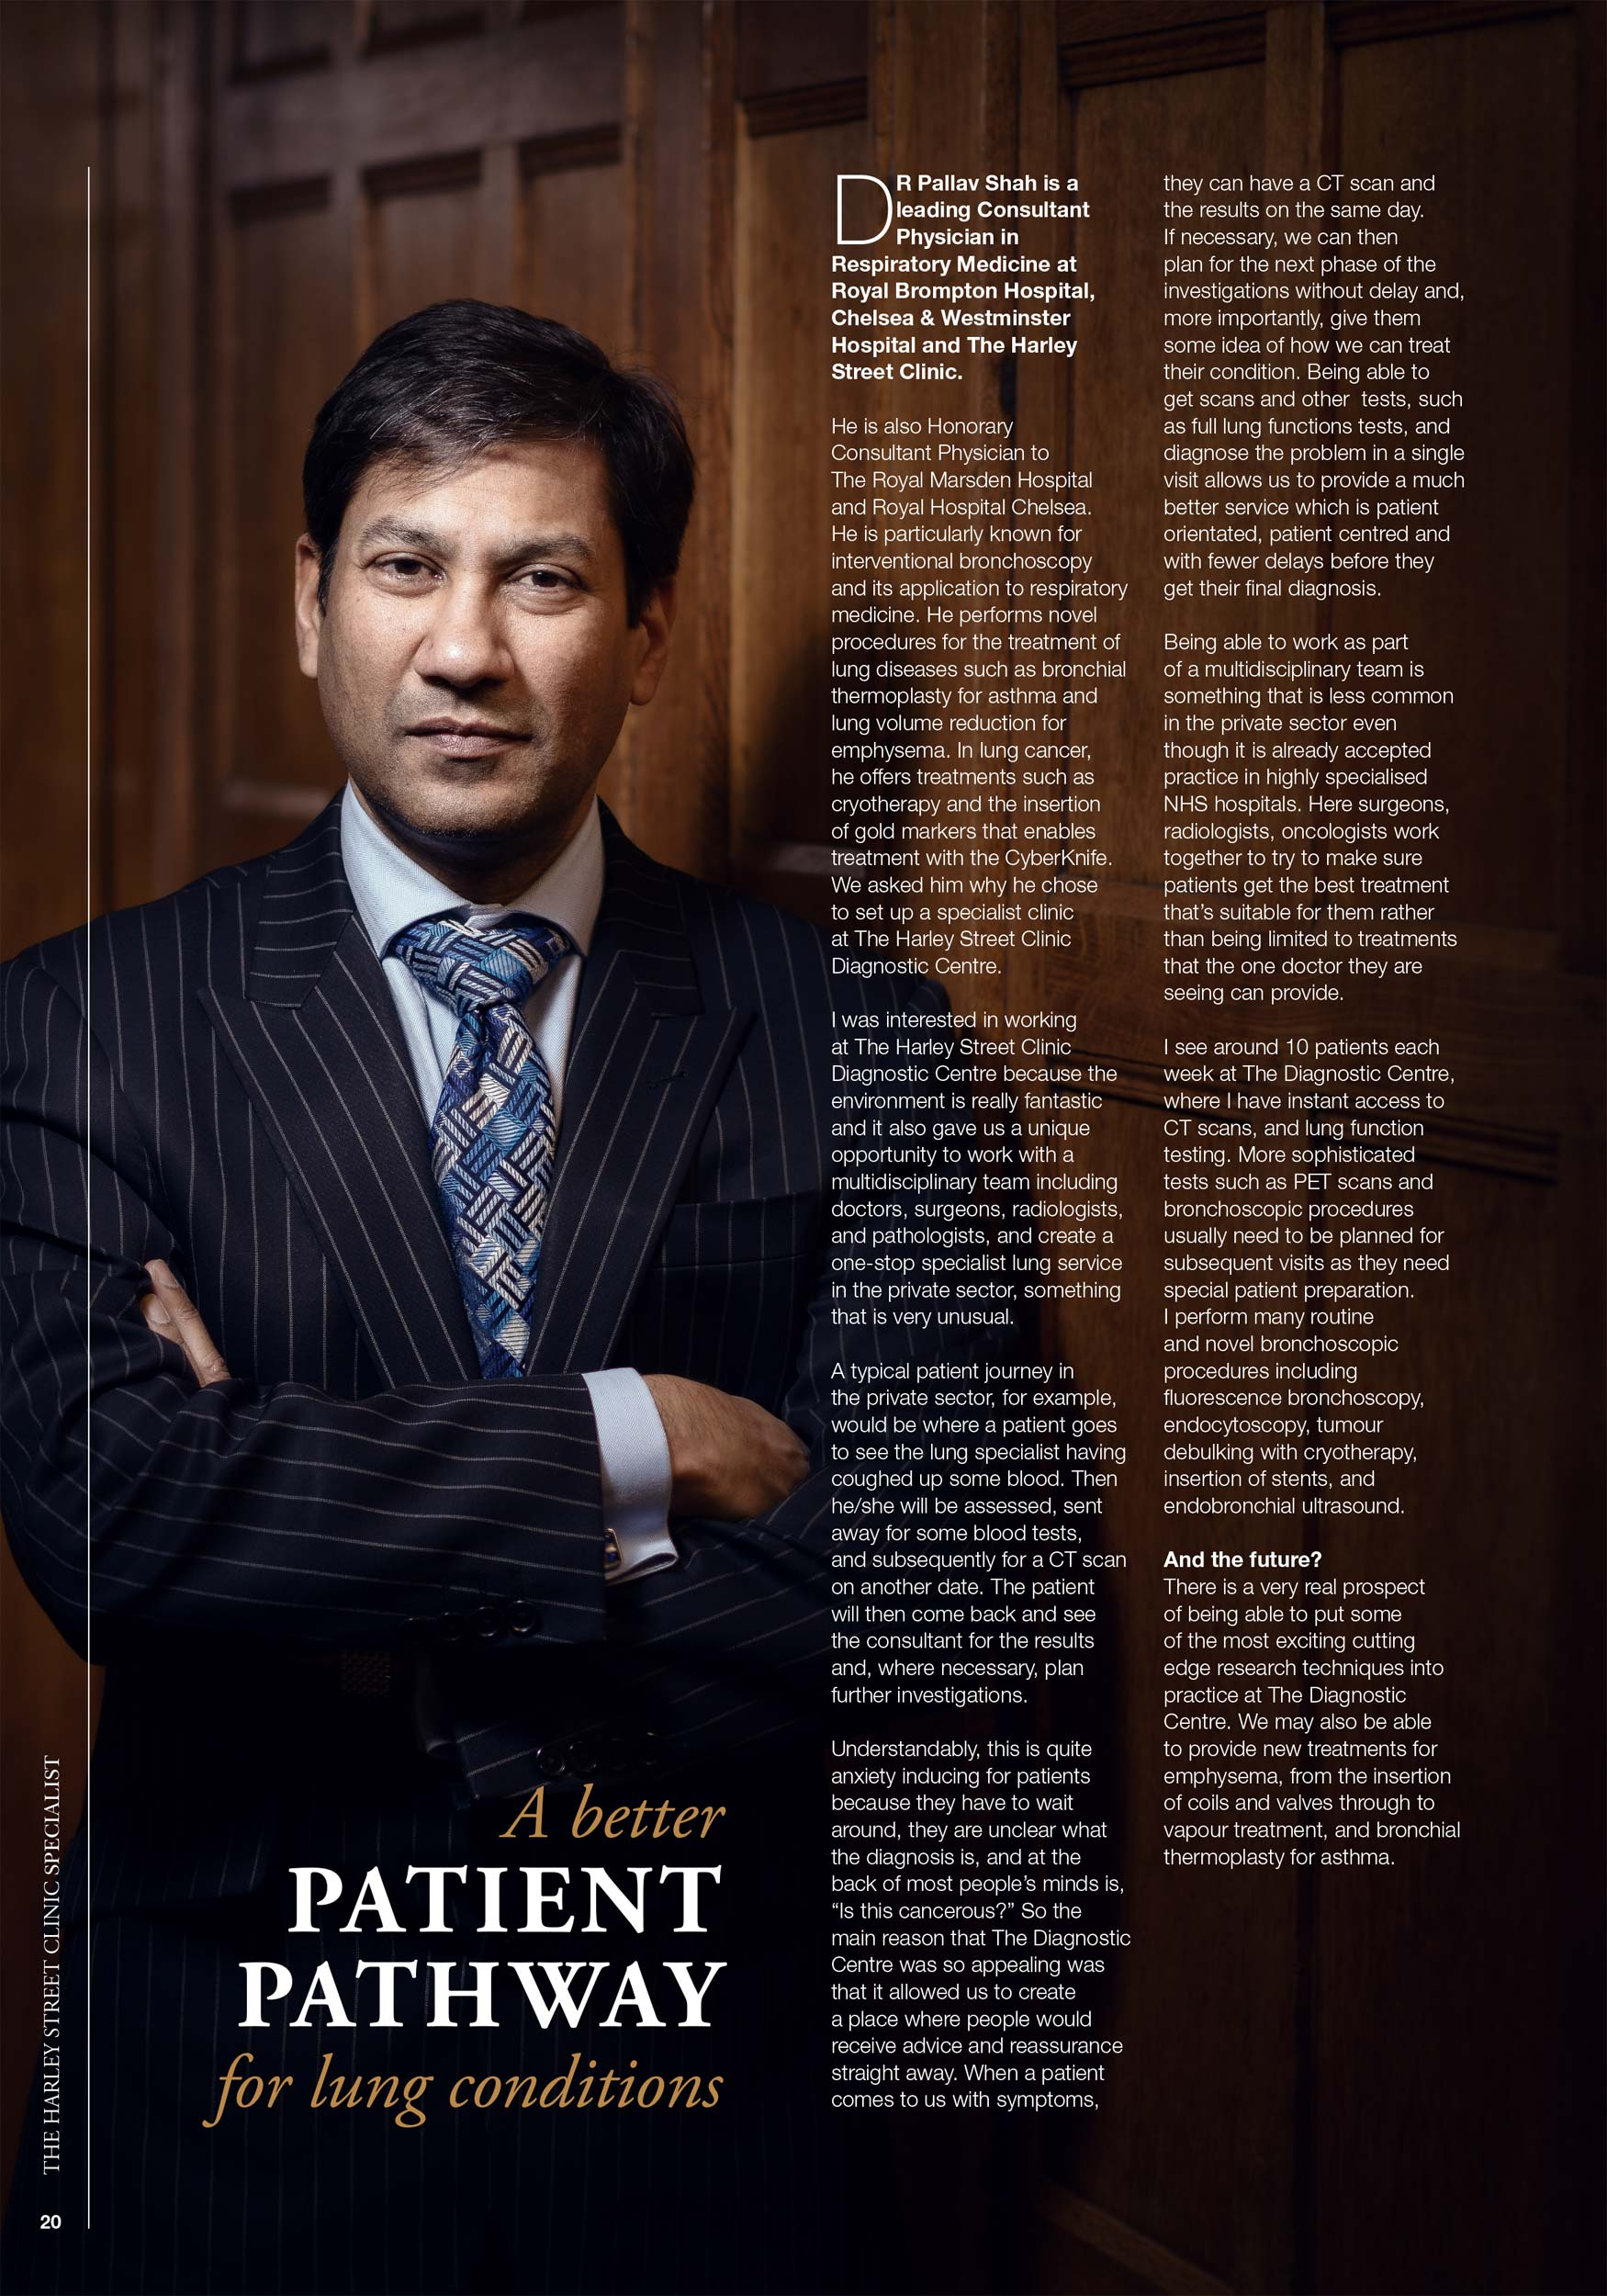 Harley Street consultant portrait, wood panelling